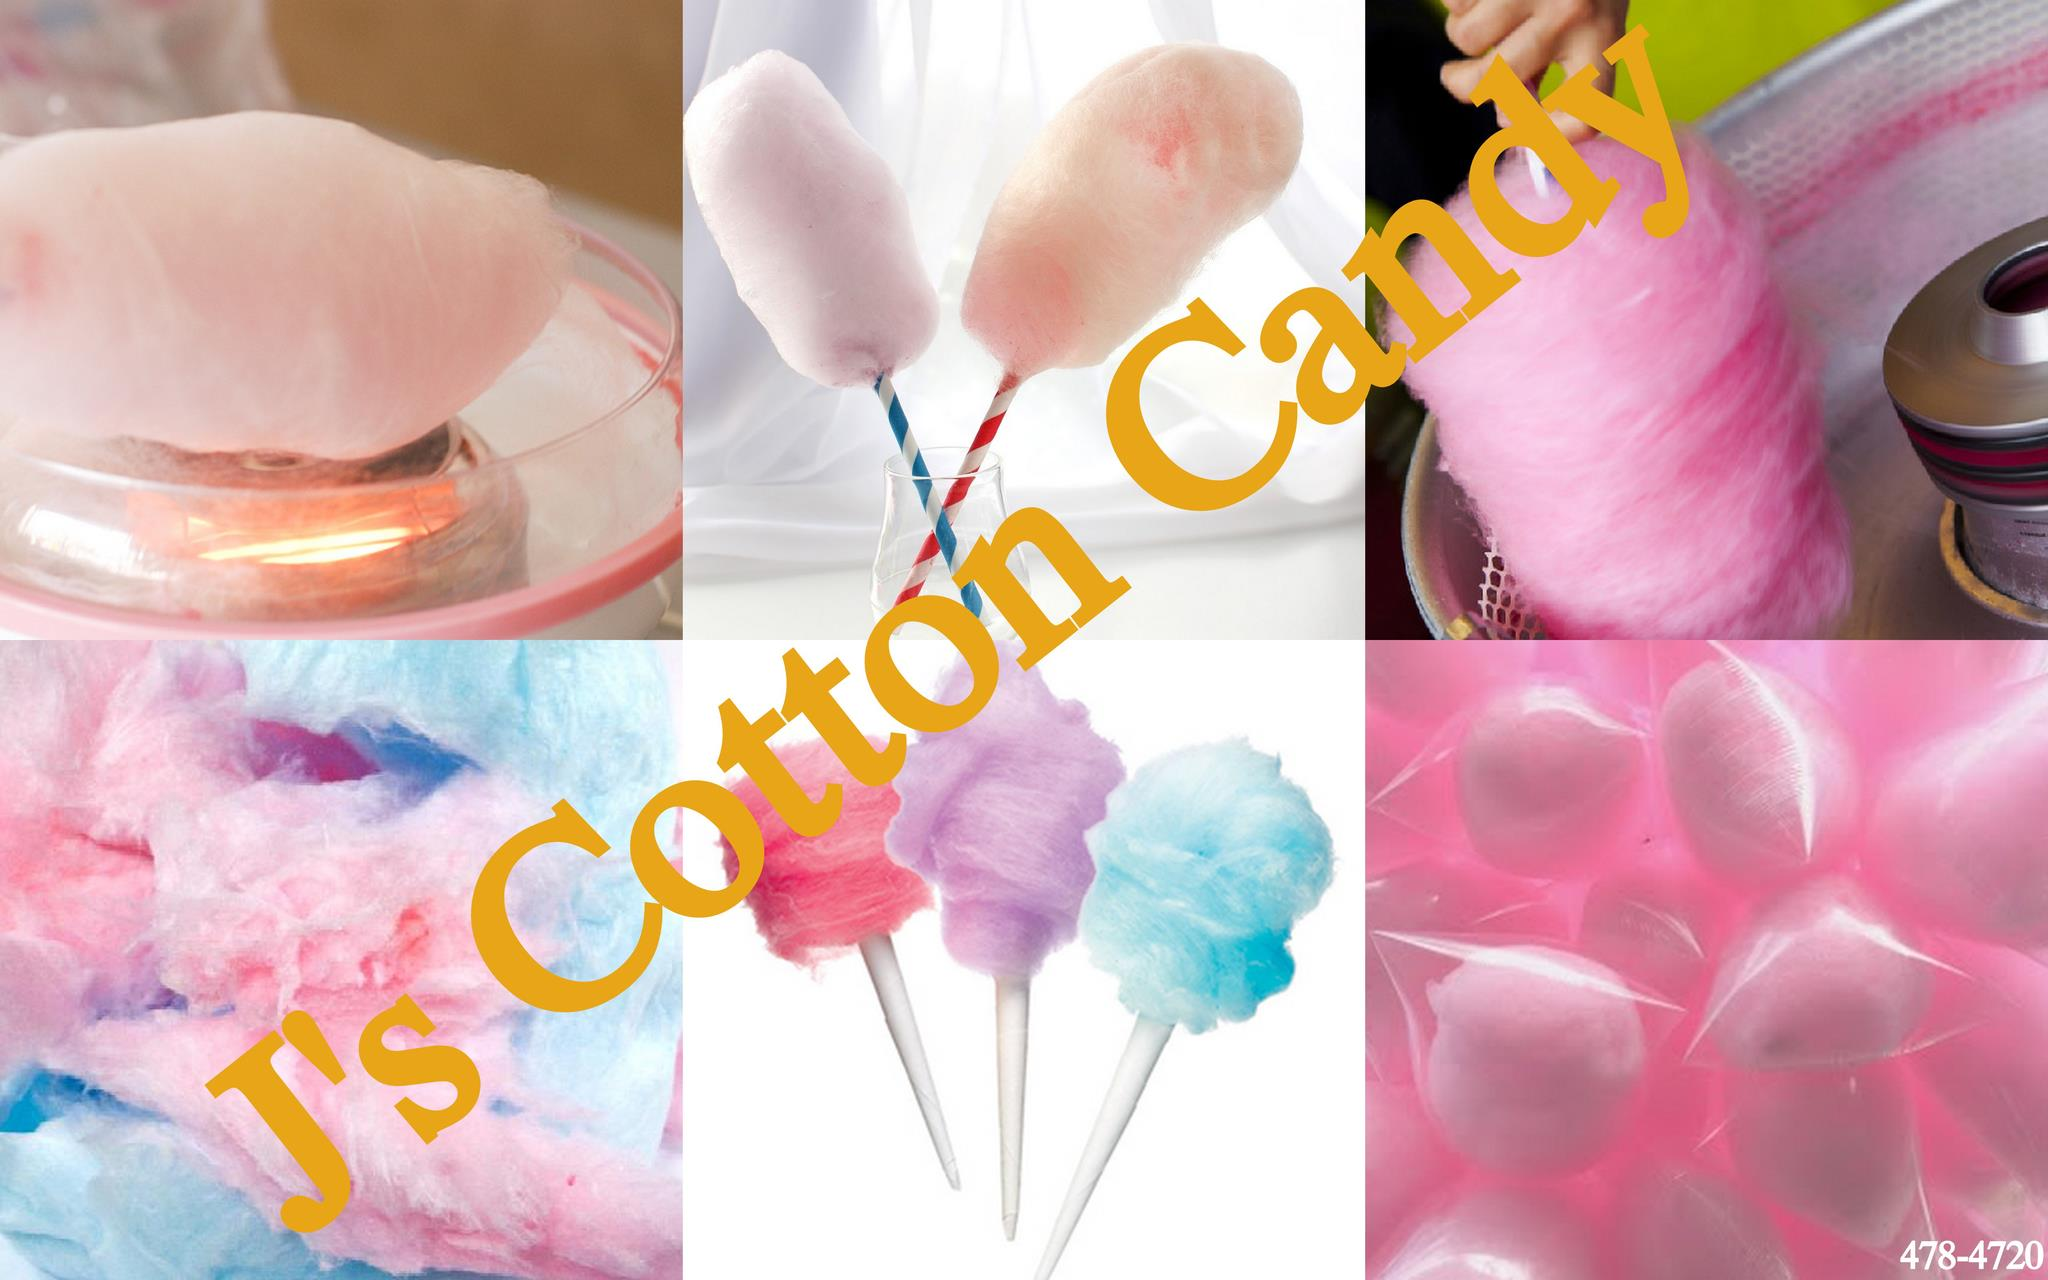 J s Cotton Candy Trinidad Classifieds